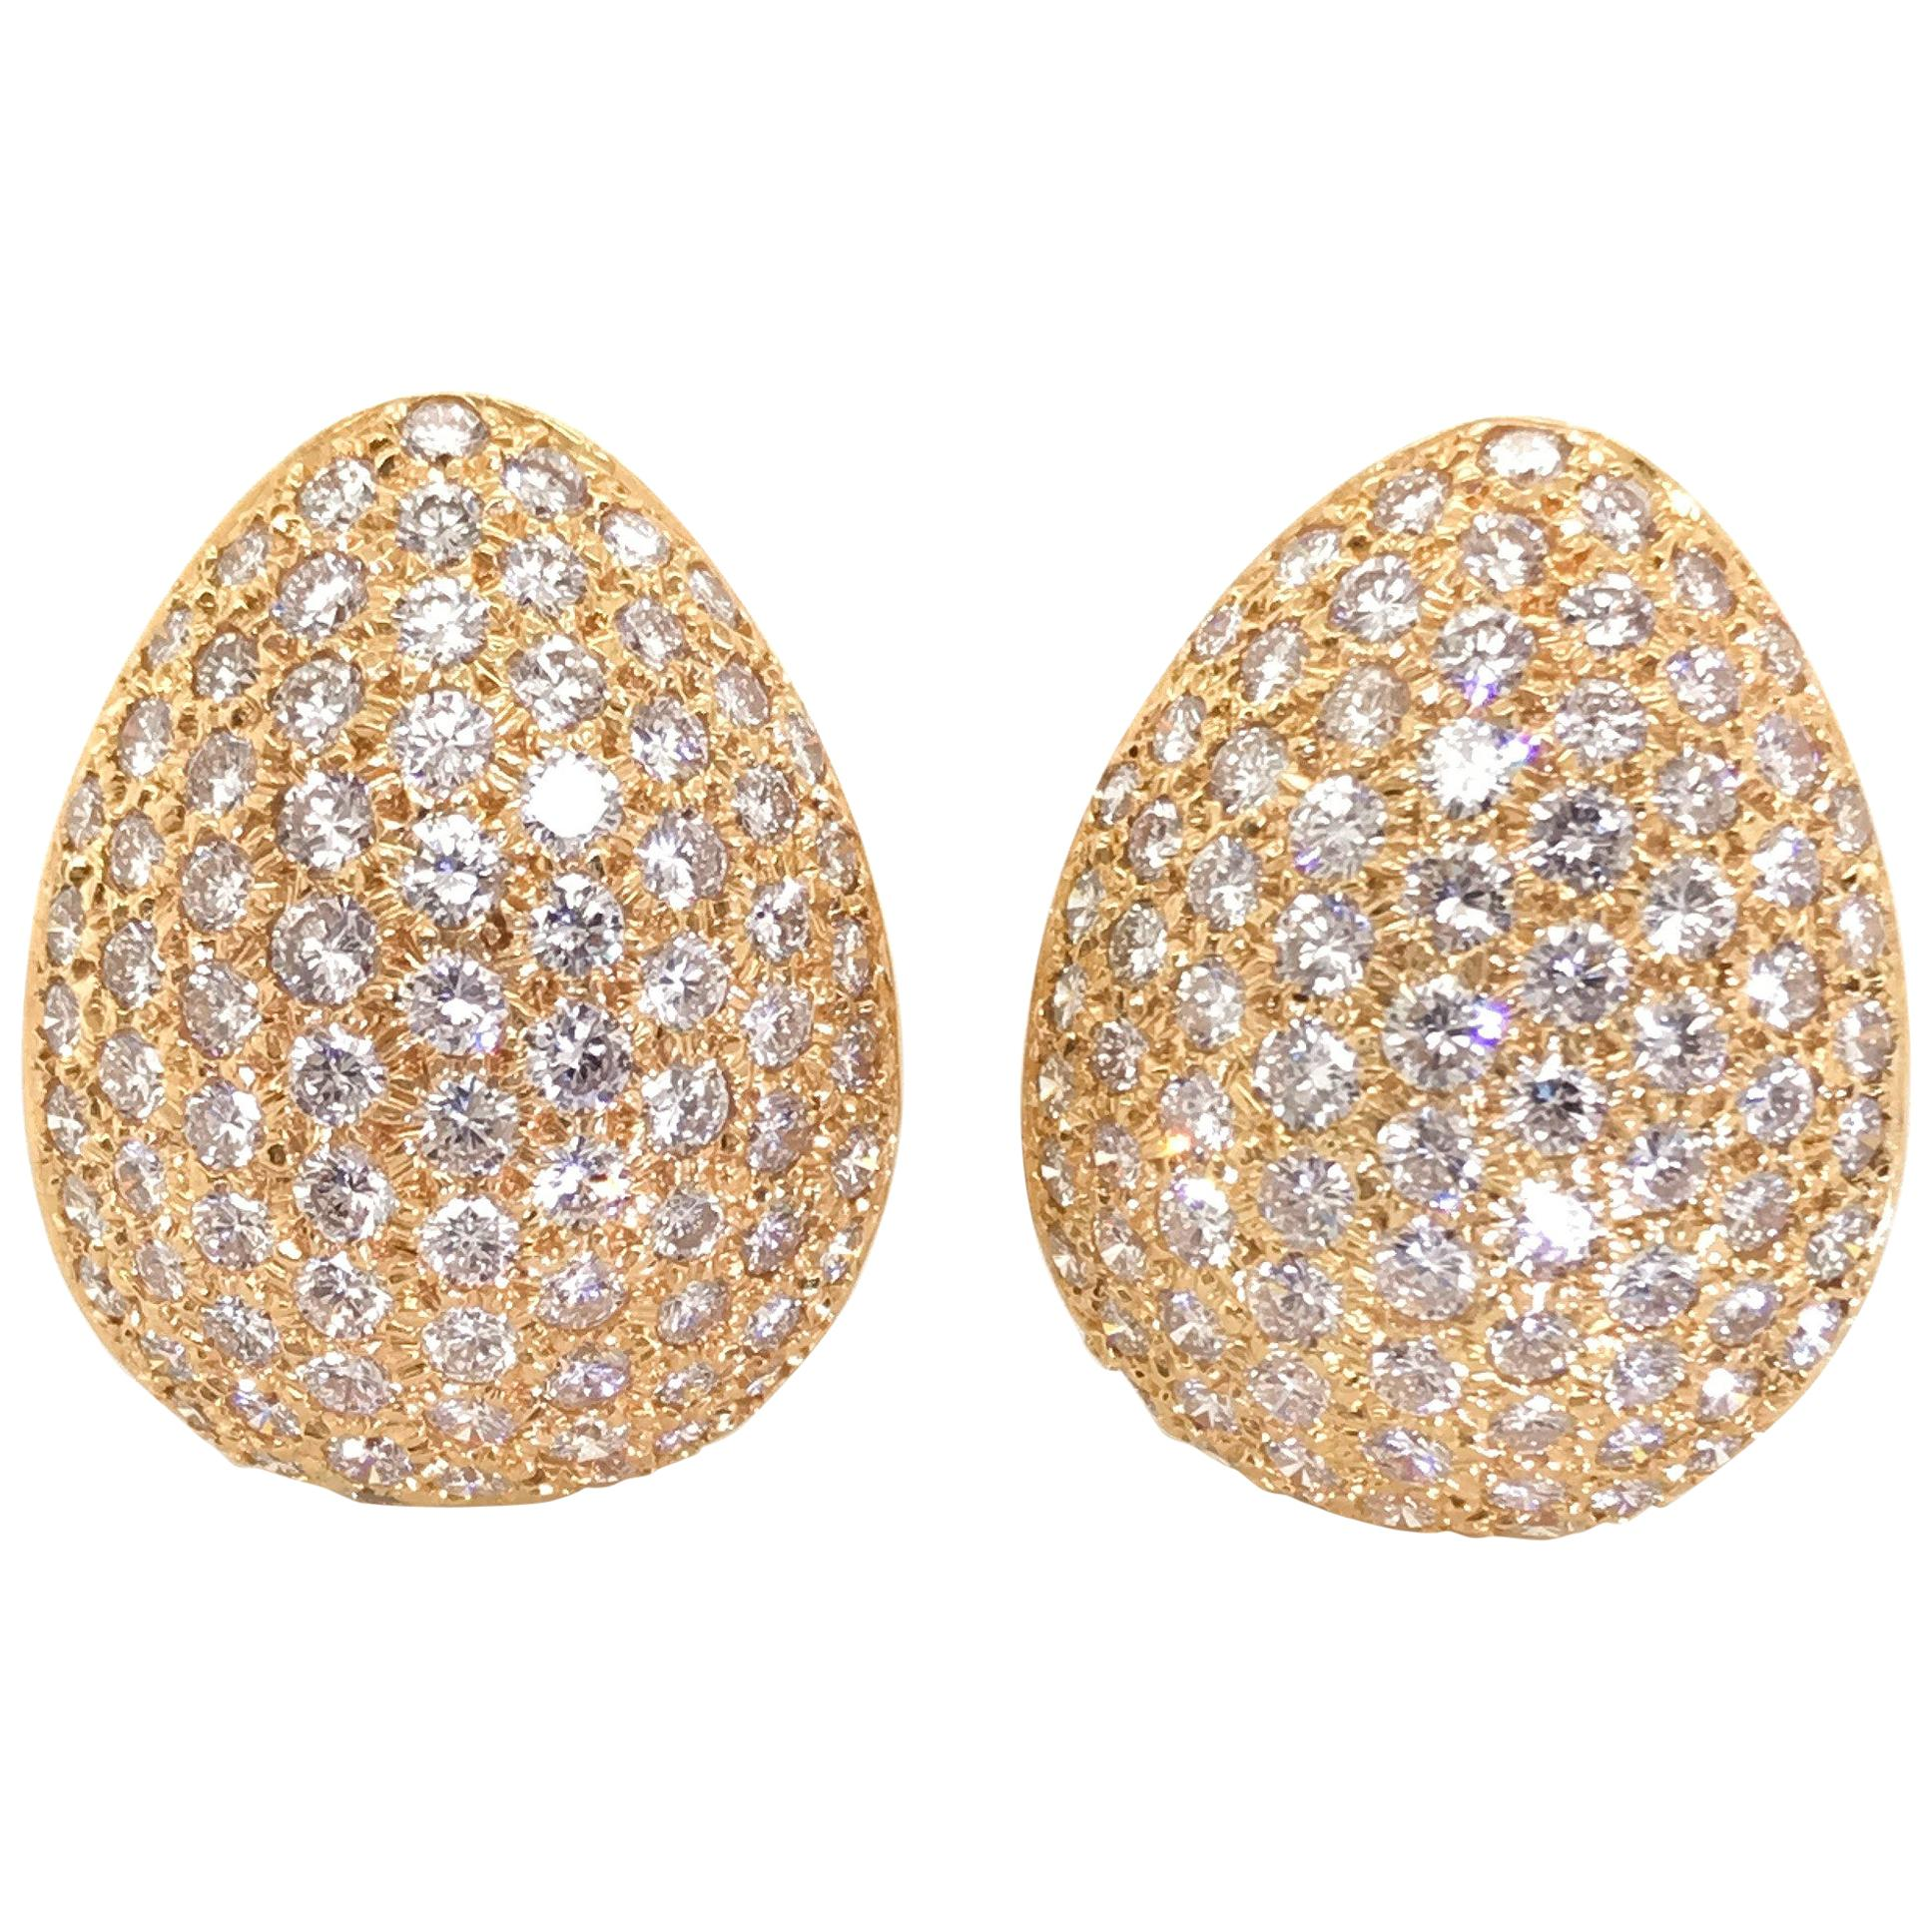 ddbe5d6c6 Diamond, Antique and Vintage Earrings - 21,373 For Sale at 1stdibs